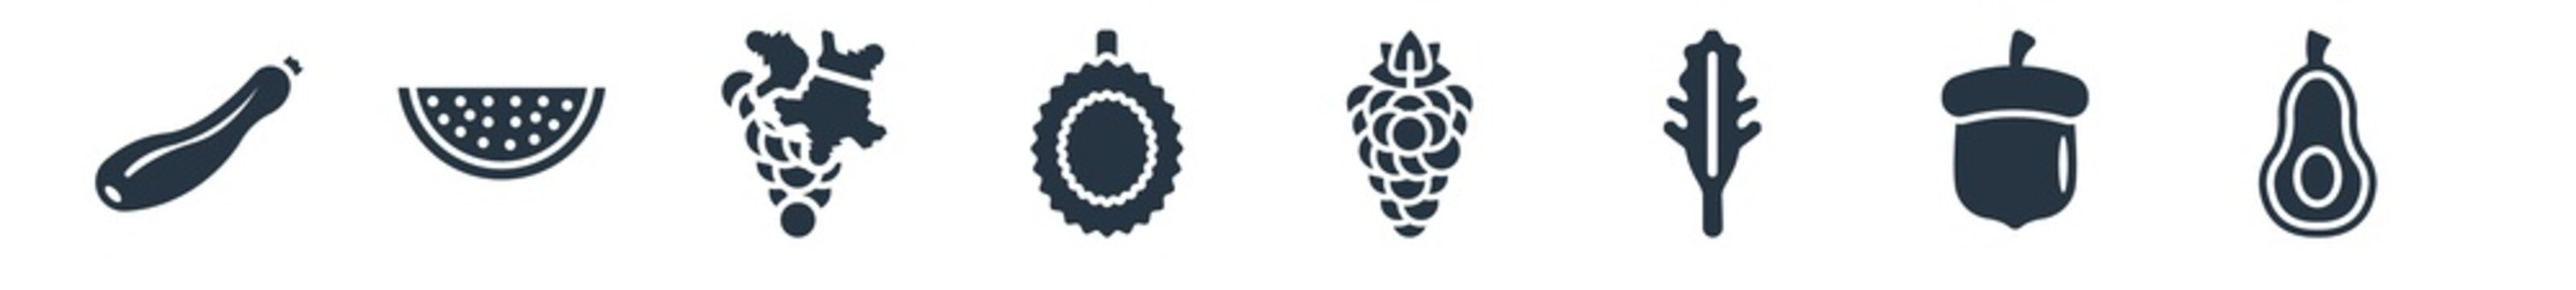 fruits filled icons. glyph vector icons such as avocado, acorn, arugula, blackberry, durian, grape, watermelon sign isolated on white background.